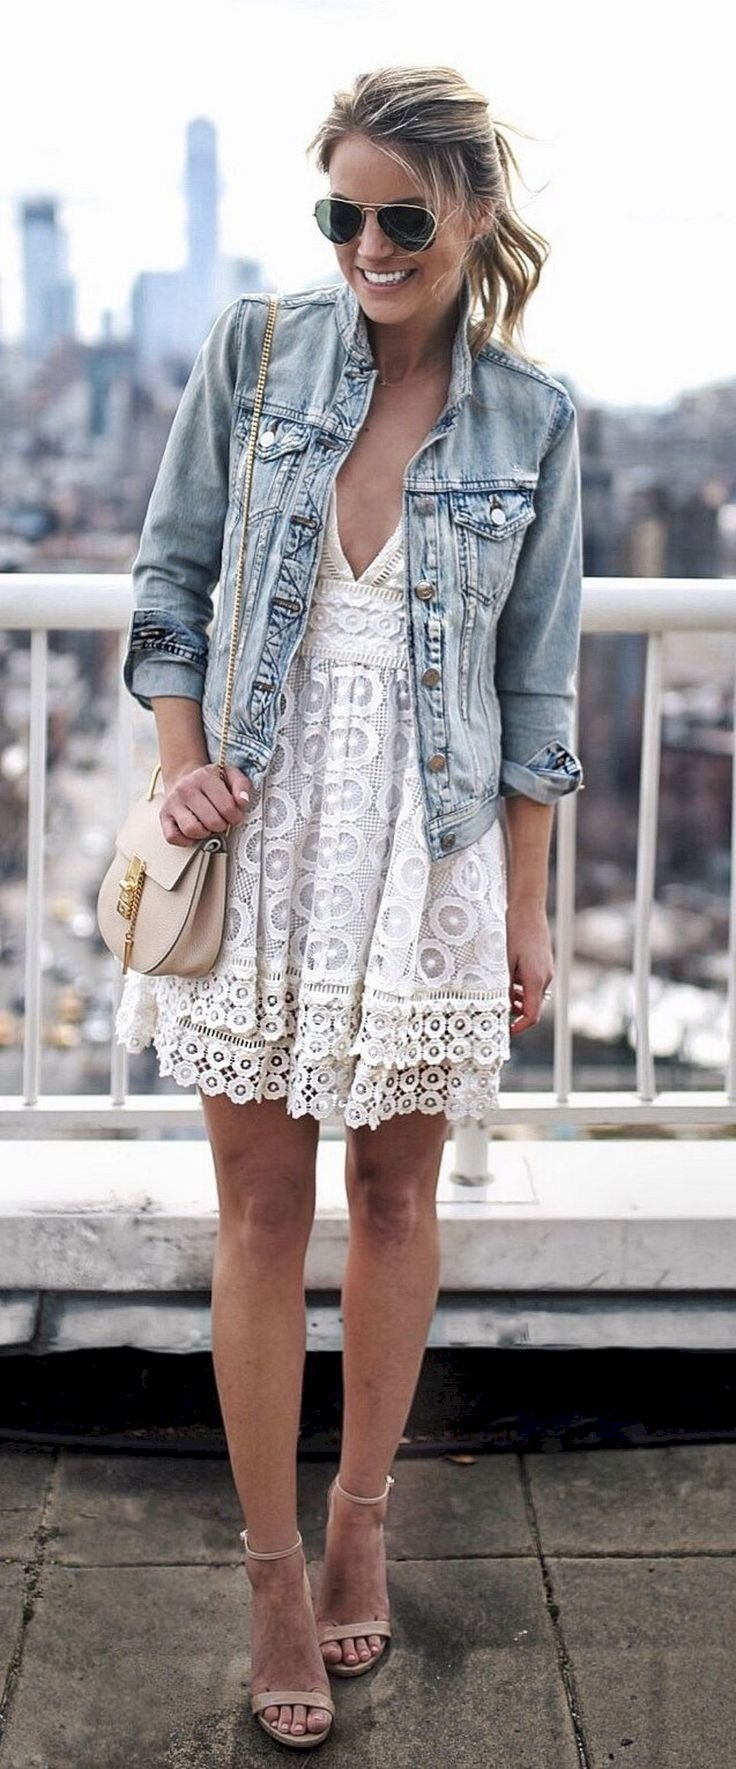 10 Cute Cute Outfit Ideas For Summer les 7 meilleures images du tableau summer outfit europe sur 2020